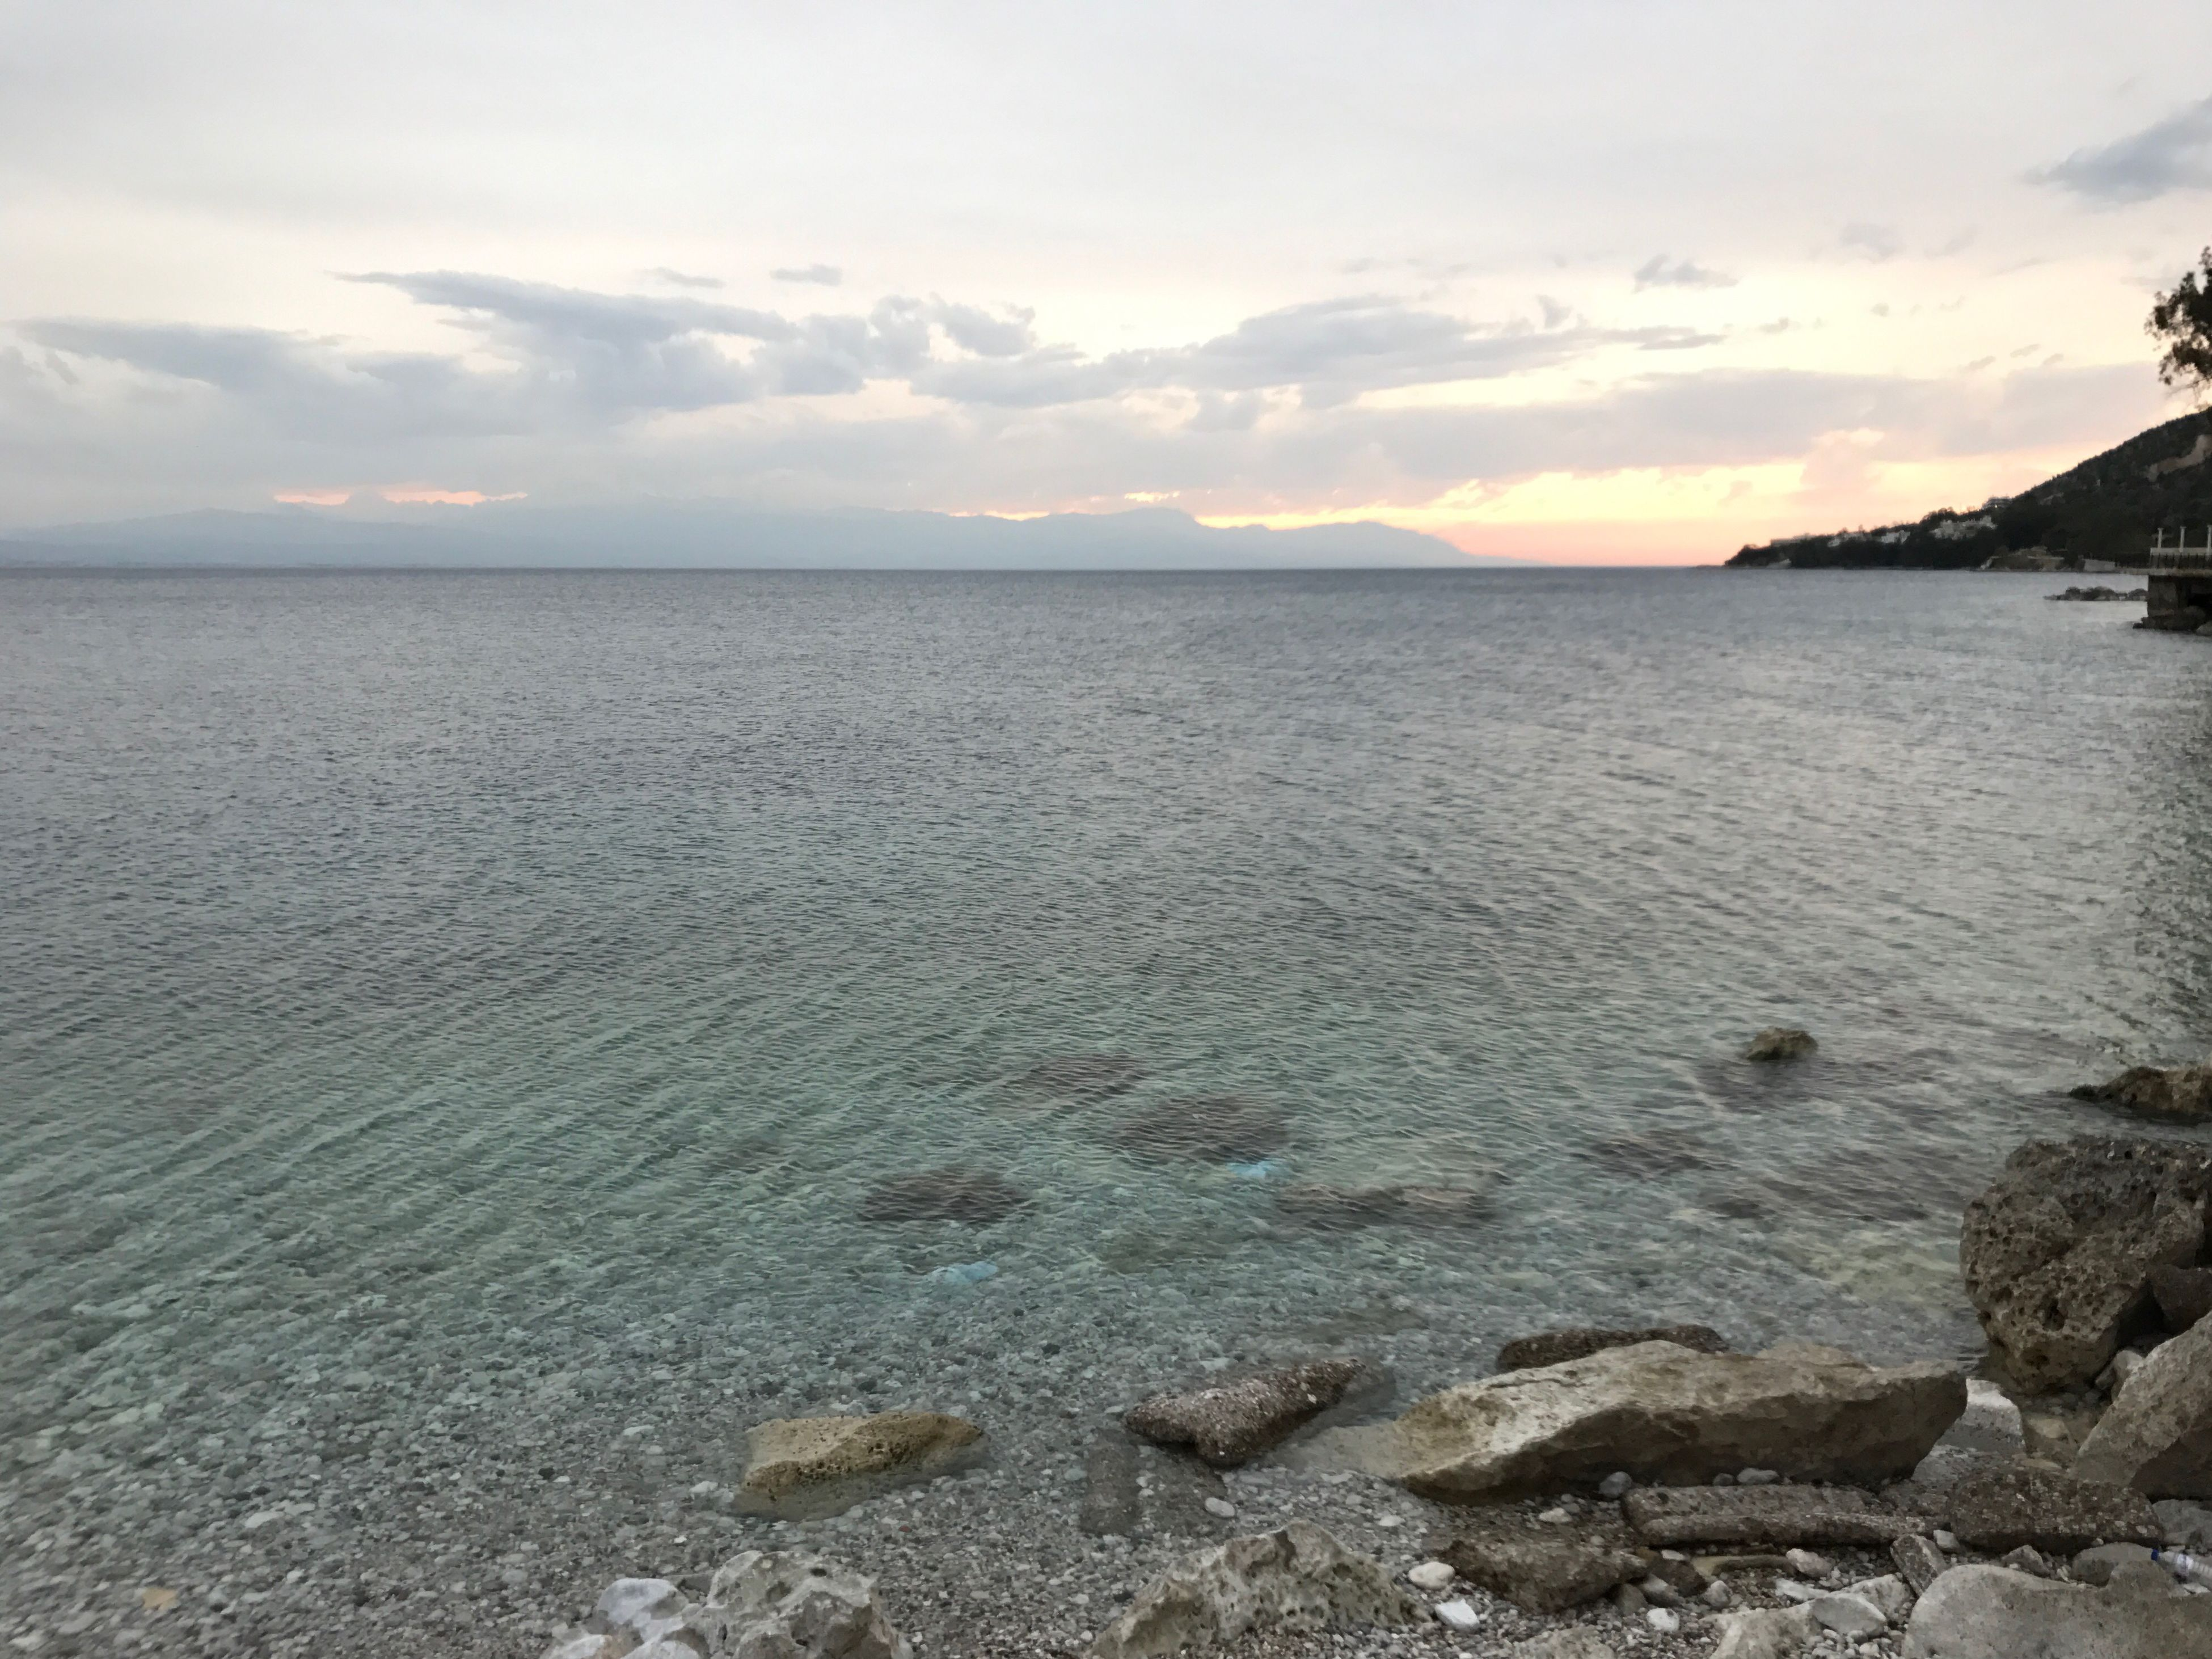 sea, nature, sky, water, beach, beauty in nature, tranquil scene, scenics, horizon over water, tranquility, no people, outdoors, day, cloud - sky, sand, seashore